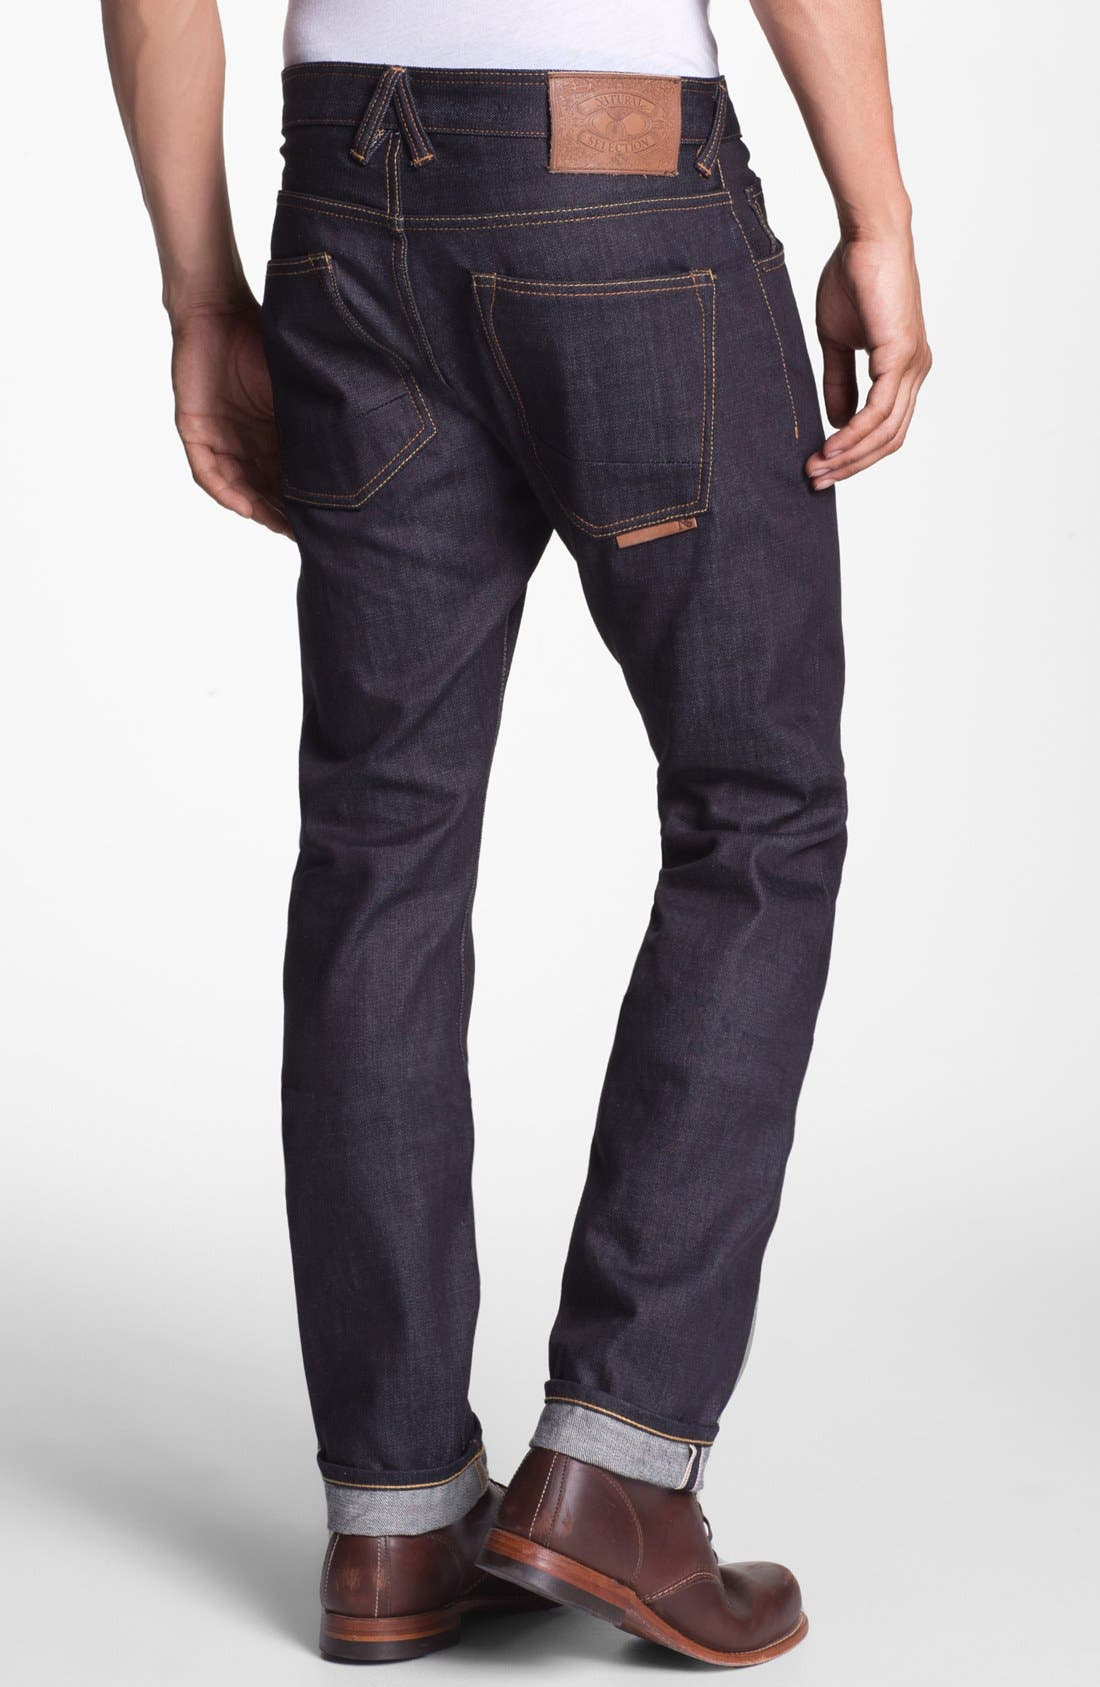 Main Image - Natural Selection Denim 'Raw' Narrow Straight Leg Selvedge Jeans (C-Raw)